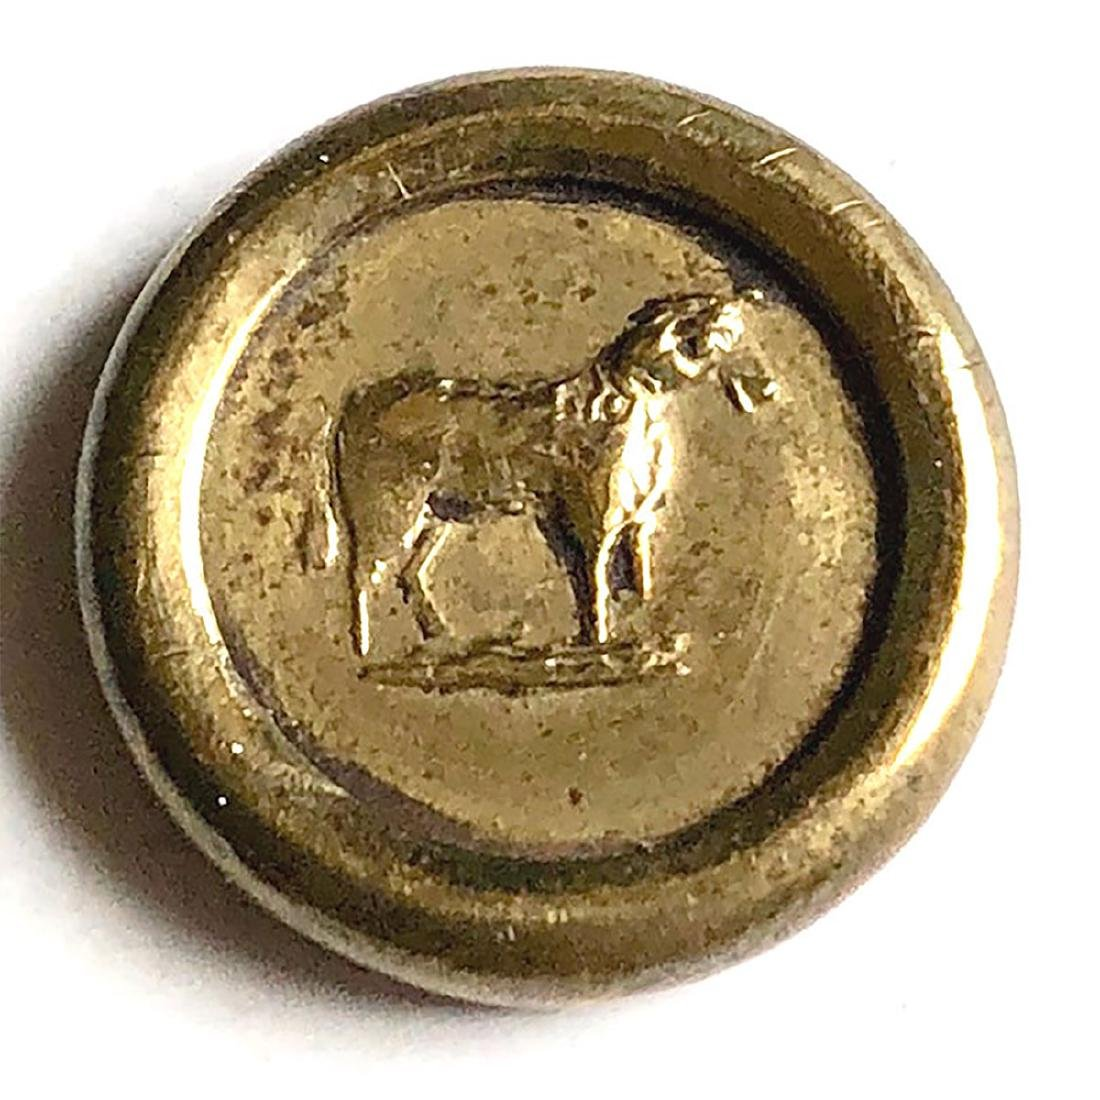 2 JACKSONIAN BUTTONS INCL. TRAIN & GOAT OR HORSE - 2